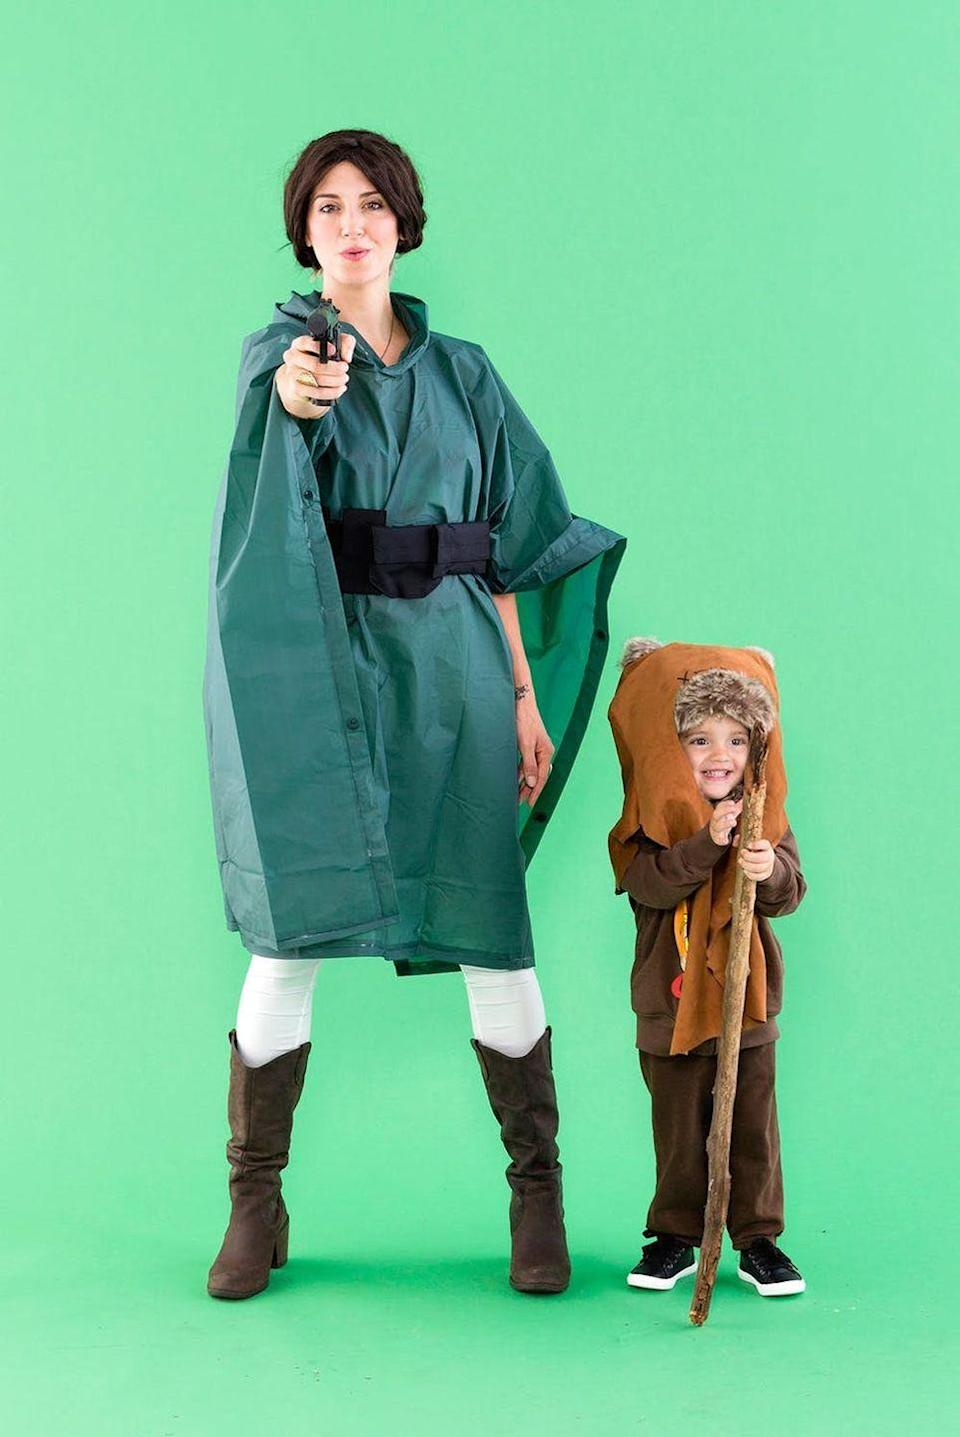 """<p>A green poncho is the genius base of this mom's Leia costume. Seriously, how snuggly is that baby Ewok in his brown sweatsuit?</p><p><strong>Get the tutorial at <a href=""""https://www.brit.co/star-wars-leia-ewok-halloween-costumes/"""" rel=""""nofollow noopener"""" target=""""_blank"""" data-ylk=""""slk:Brit & Co"""" class=""""link rapid-noclick-resp"""">Brit & Co</a>.</strong></p><p><strong><a class=""""link rapid-noclick-resp"""" href=""""https://www.amazon.com/gp/product/B009KSSKMI/?tag=syn-yahoo-20&ascsubtag=%5Bartid%7C10050.g.21287723%5Bsrc%7Cyahoo-us"""" rel=""""nofollow noopener"""" target=""""_blank"""" data-ylk=""""slk:SHOP GREEN PONCHO"""">SHOP GREEN PONCHO</a></strong></p>"""